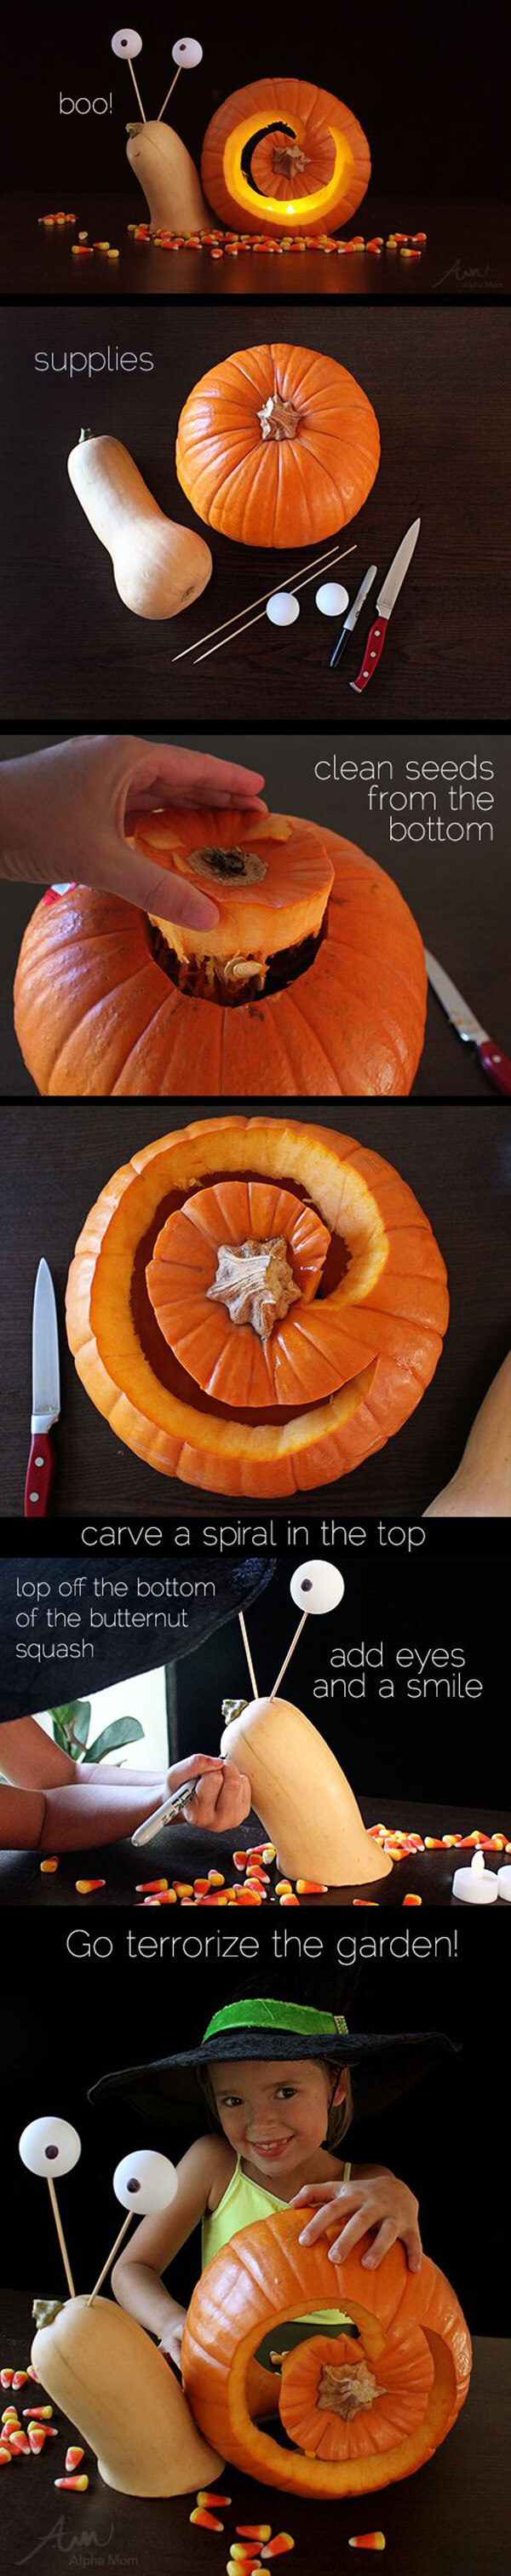 DIY Pumpkin Carving Ideas: Spiral Top